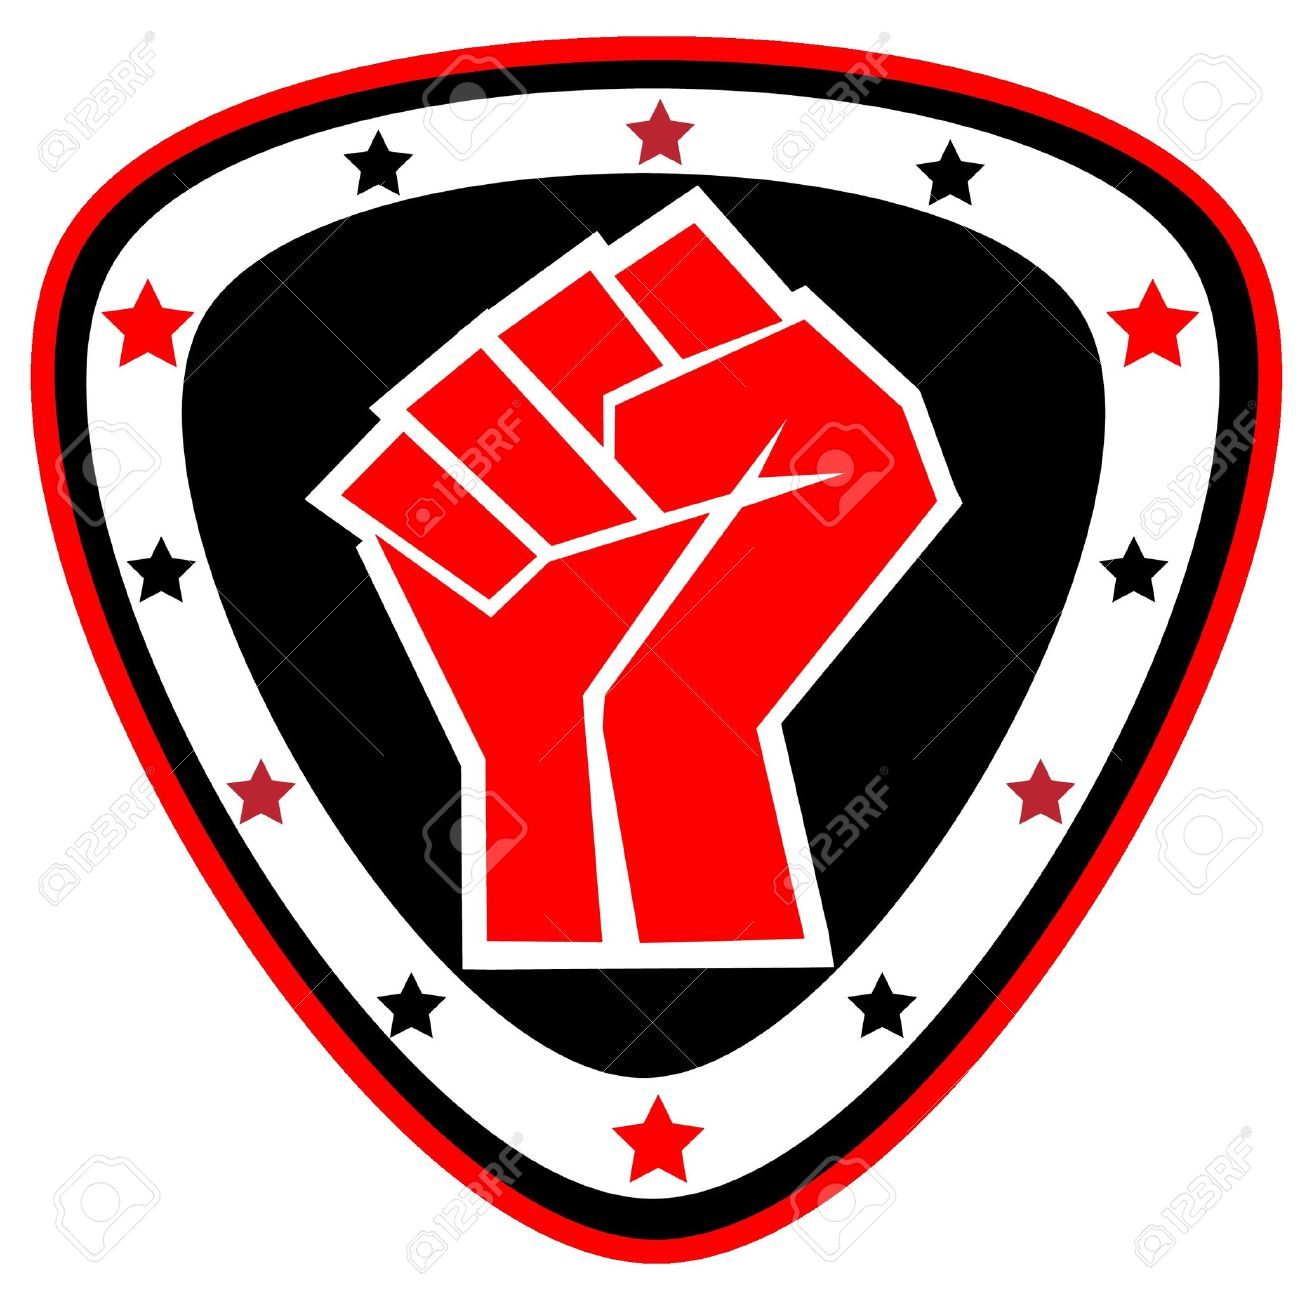 Fist clipart karate Fist Clipart Clipartwork Clipart Images